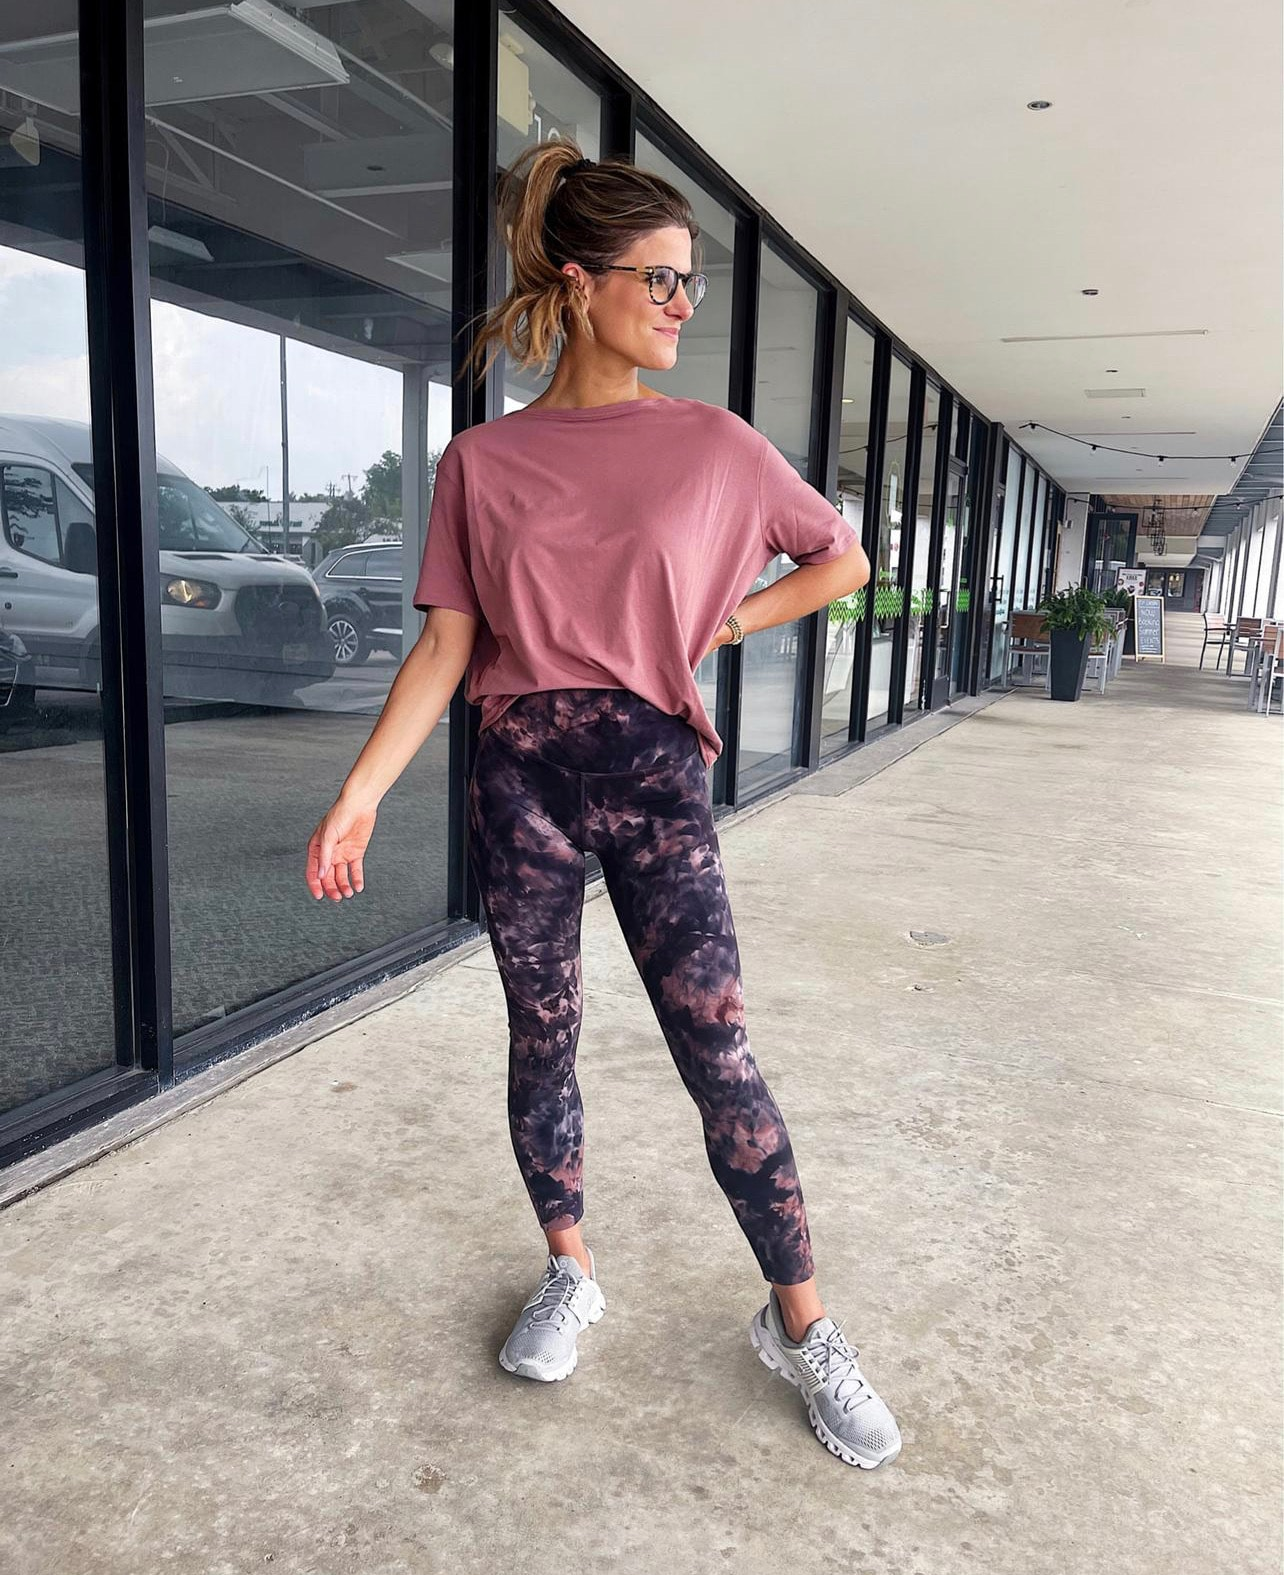 Brighton Butler wearing Lululemon align leggings tie dye and back in action tee rose color and grey sneakers tennis shoes